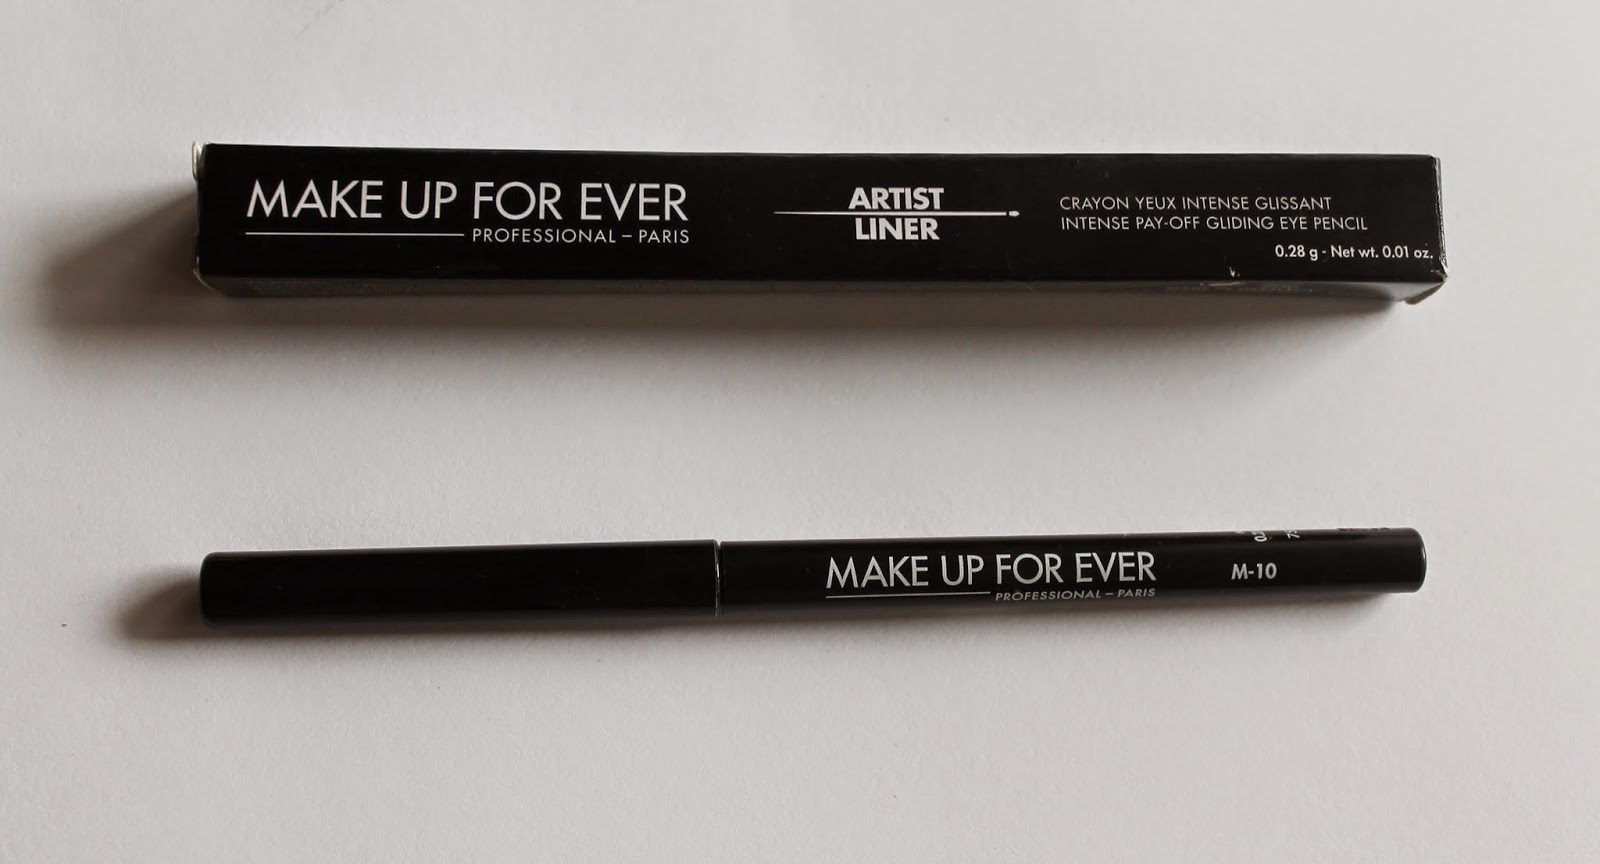 make up for ever artist liner